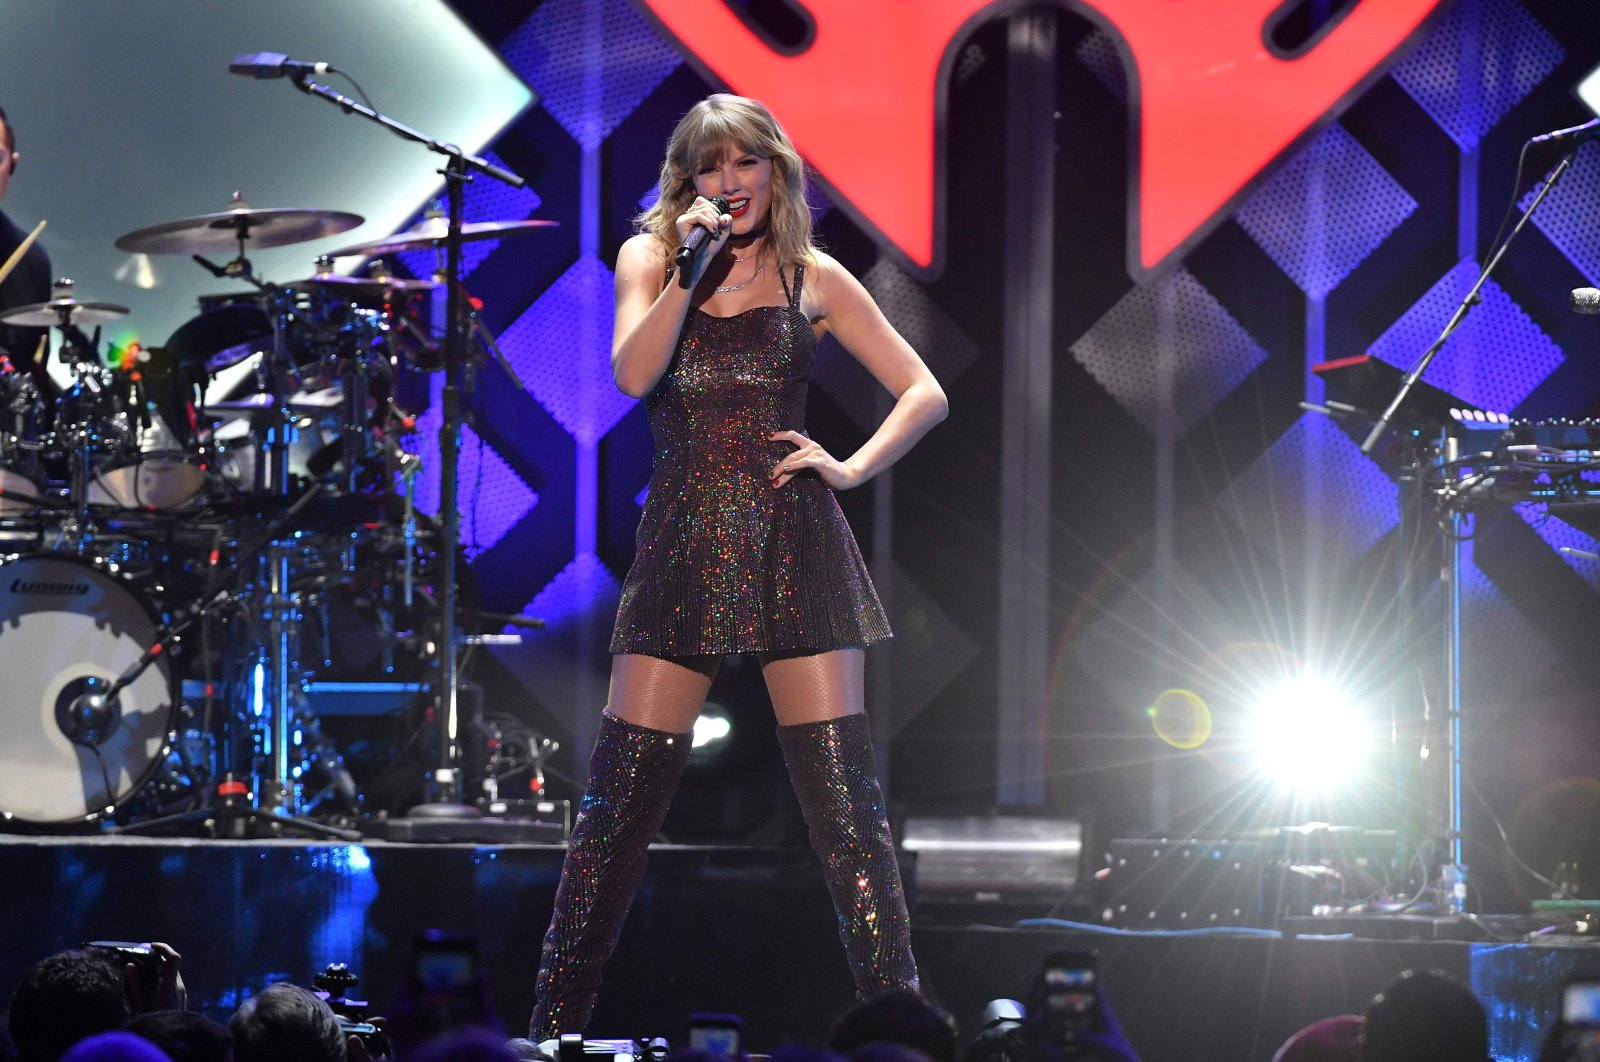 U.S. singer Taylor Swift performs onstage during the Z100's iHeartRadio Jingle Ball 2019 at Madison Square Garden in New York, Dec. 13, 2019. (AFP Photo)